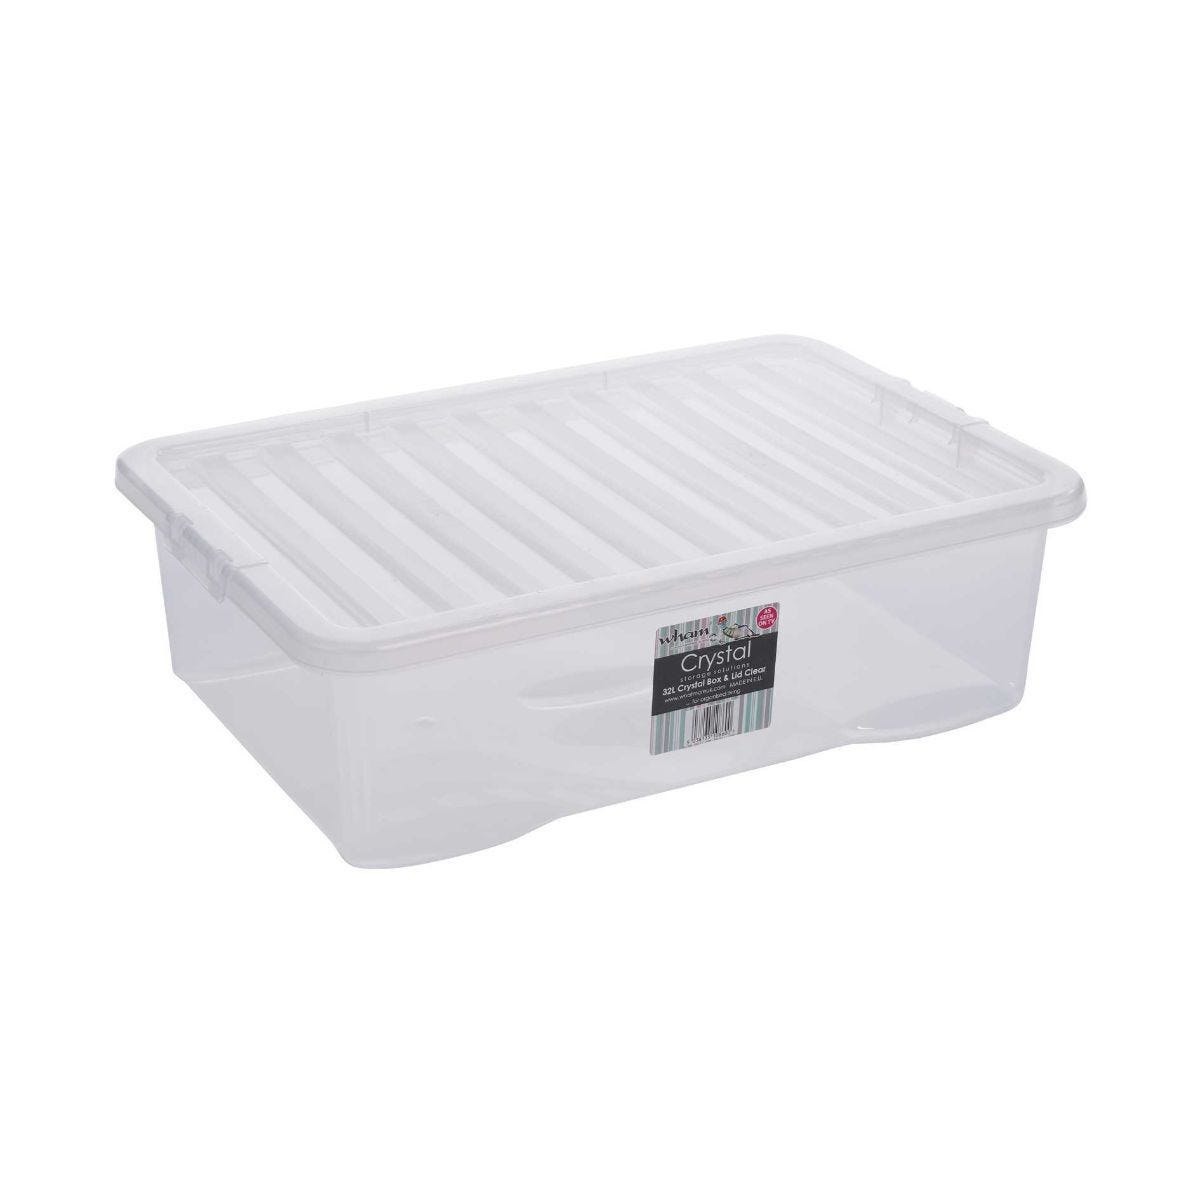 32 Litre Crystal Storage Box and Lid Single Unit